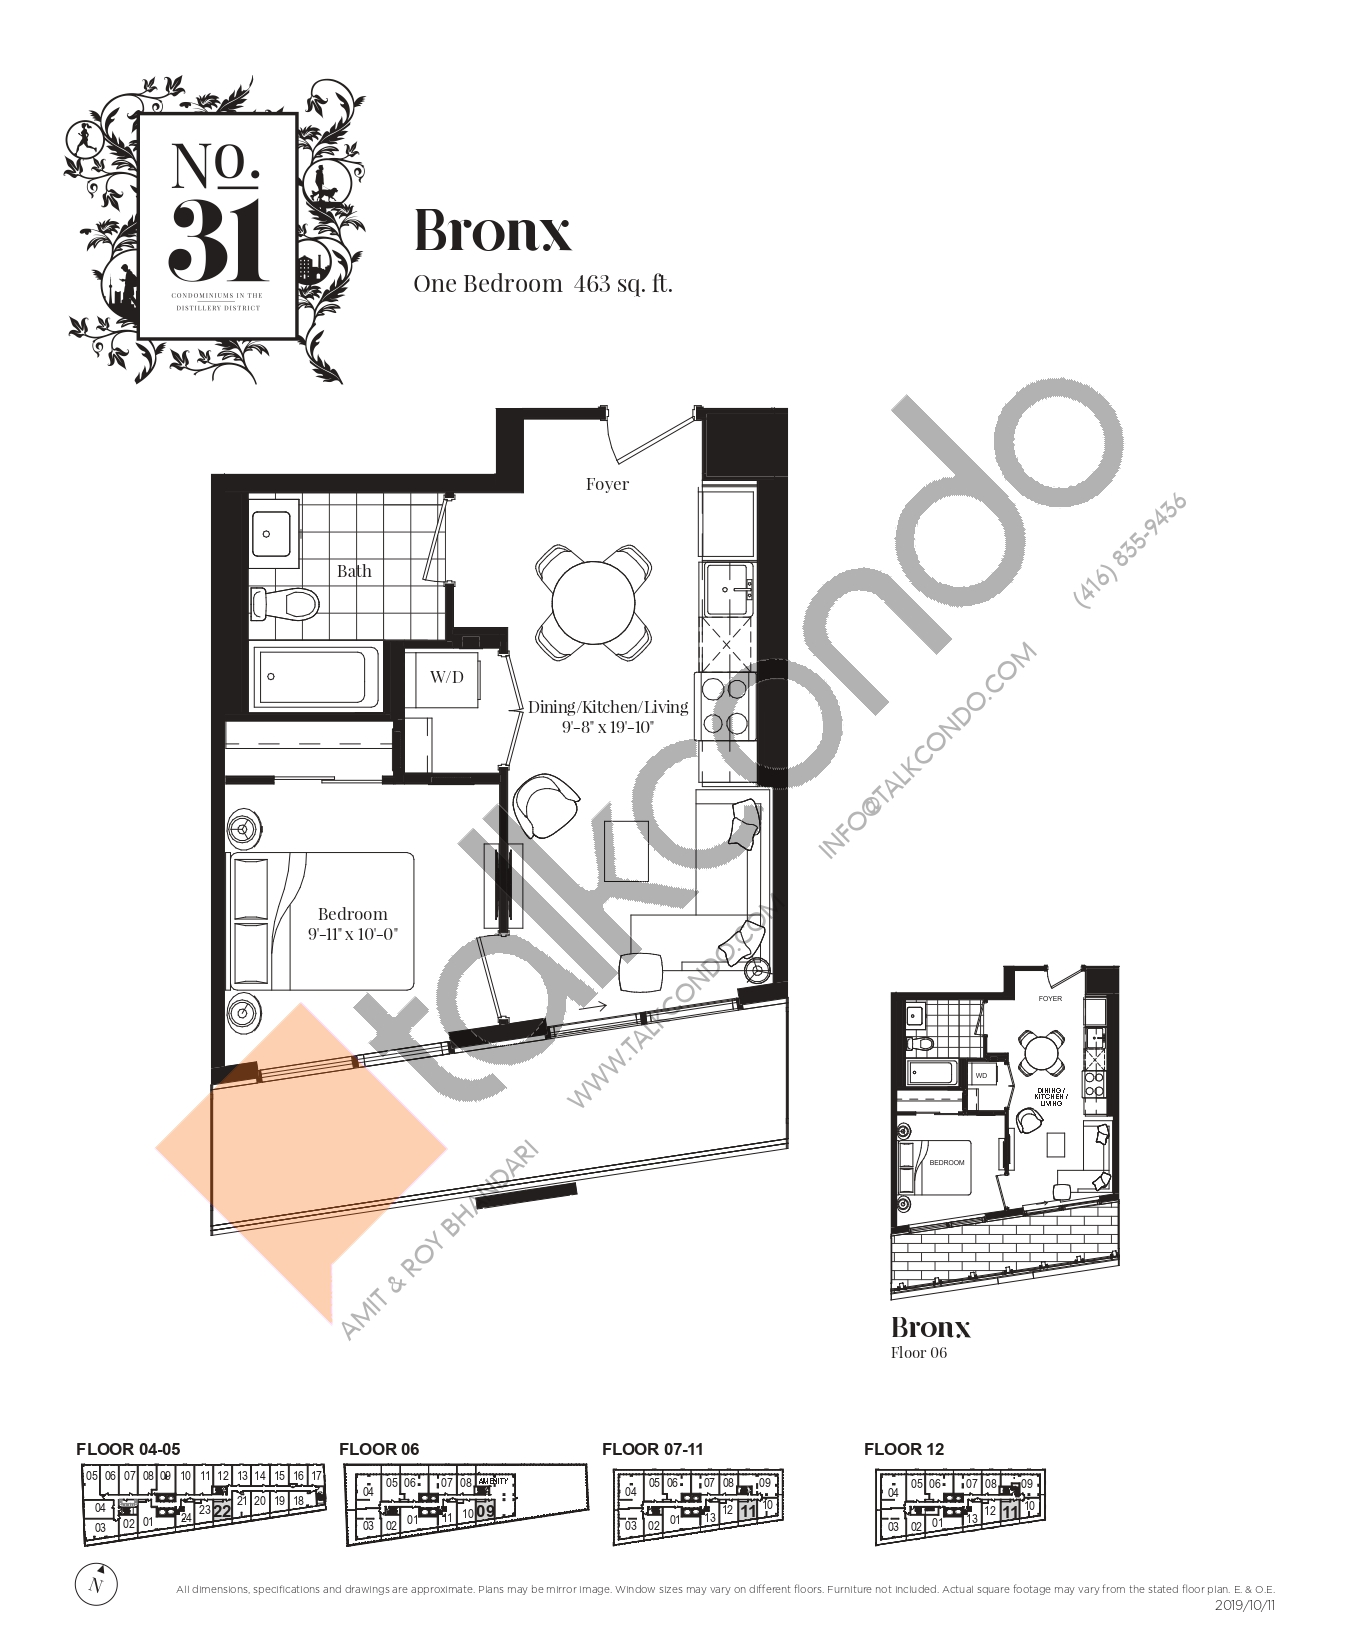 Bronx Floor Plan at No. 31 Condos - 463 sq.ft